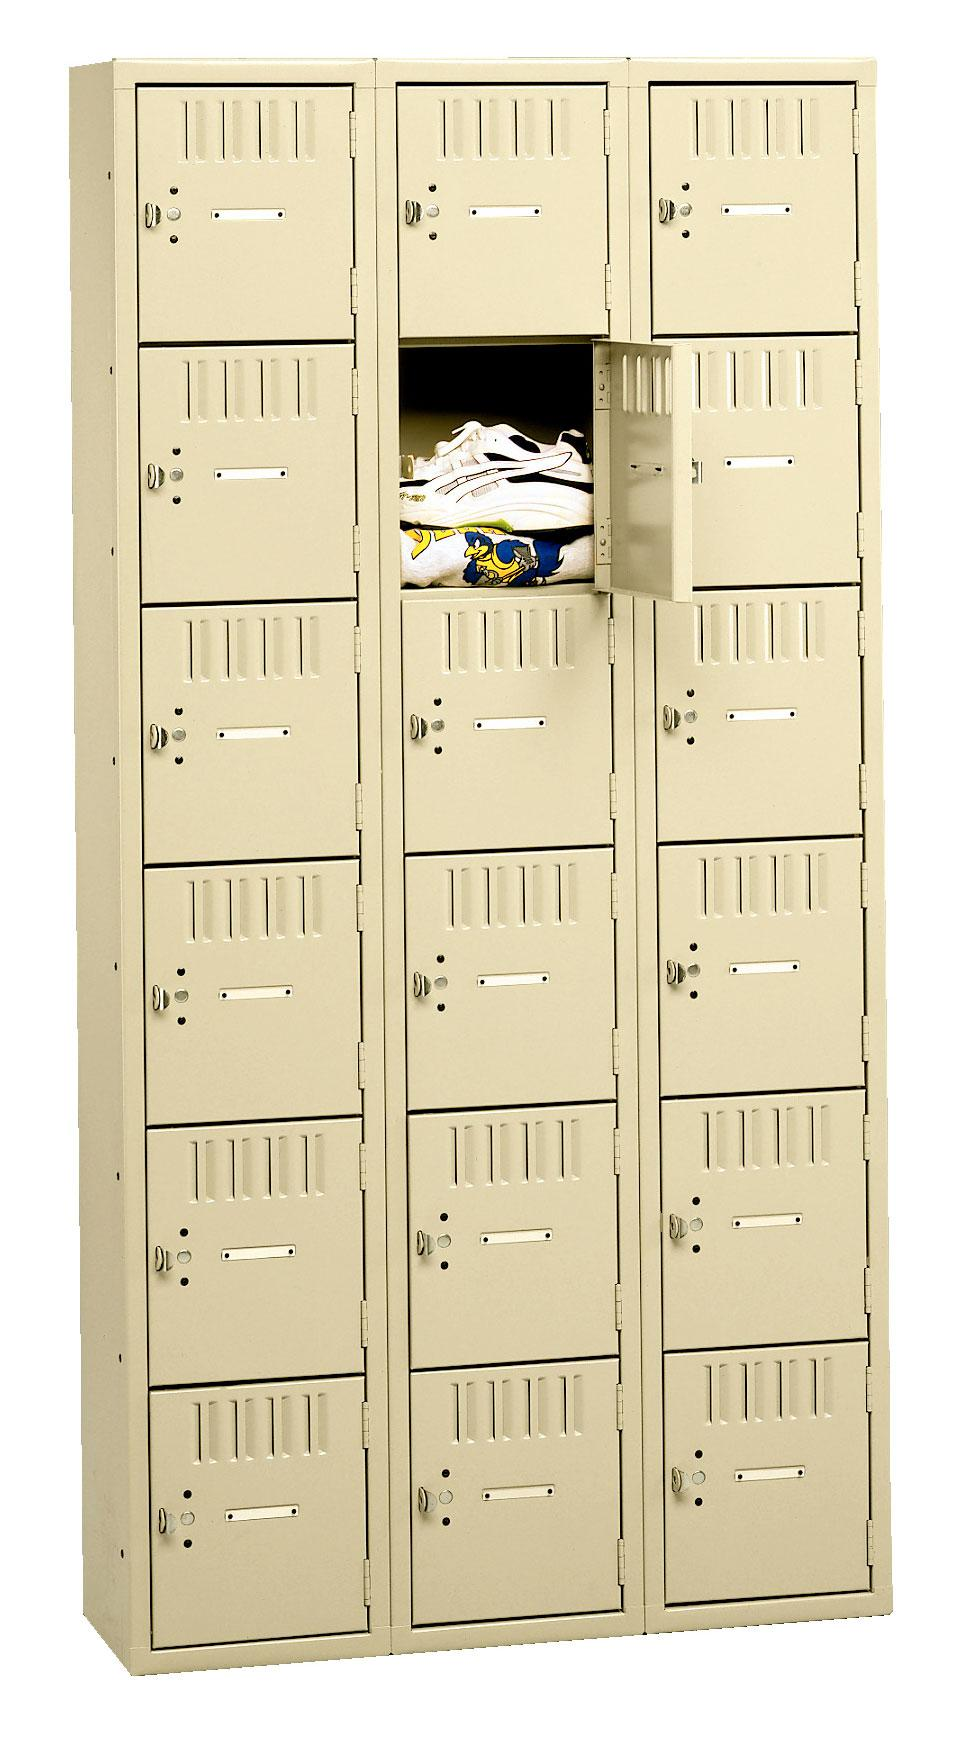 Tennsco Box Lockers - 6 Tier Without Legs - Assembled